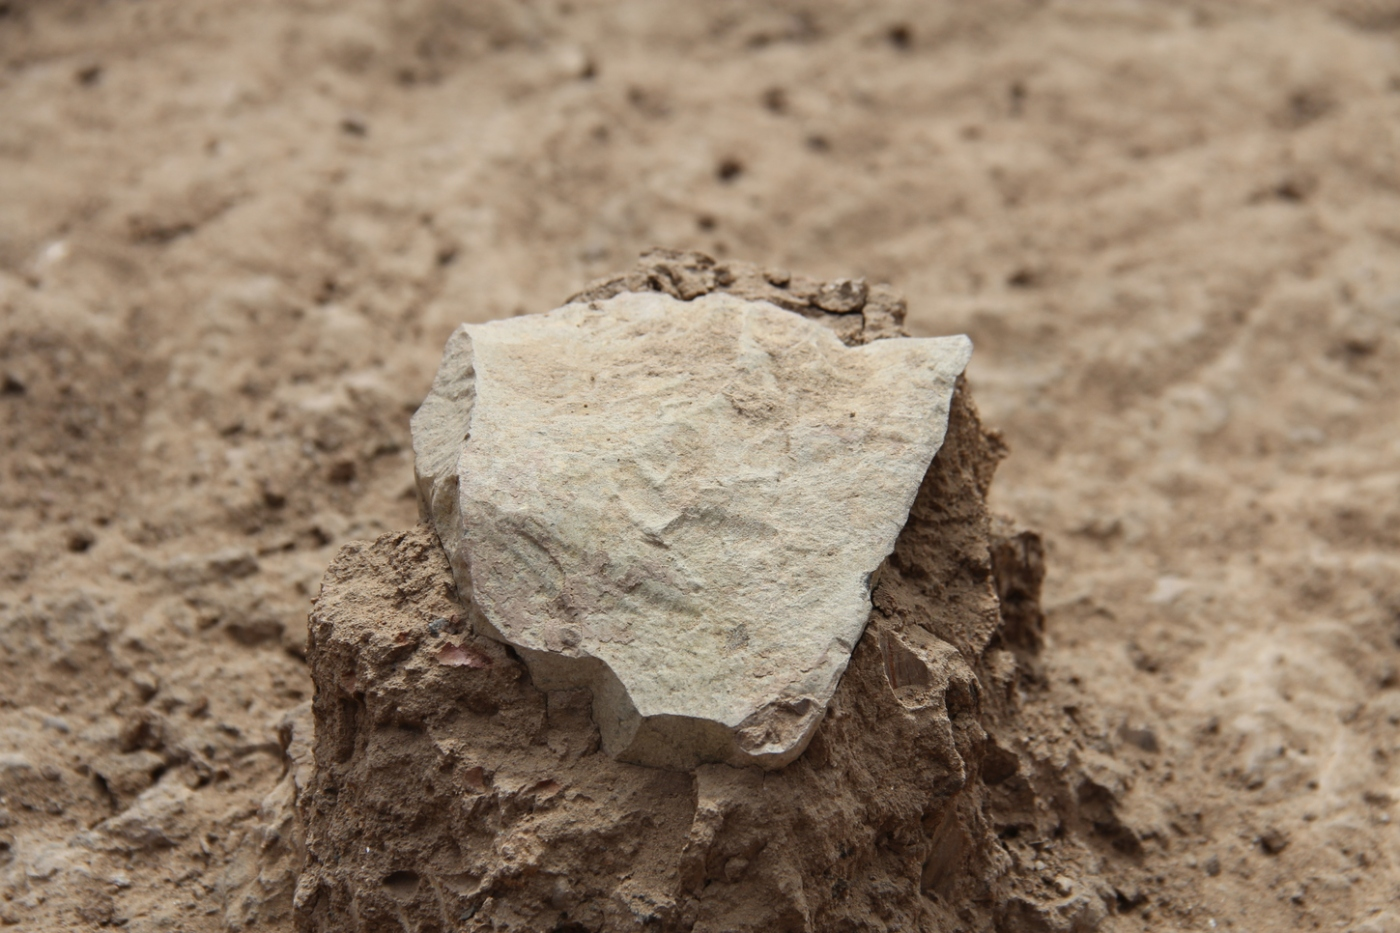 Tool unearthed at excavation site. Credit: MPK-WTAP